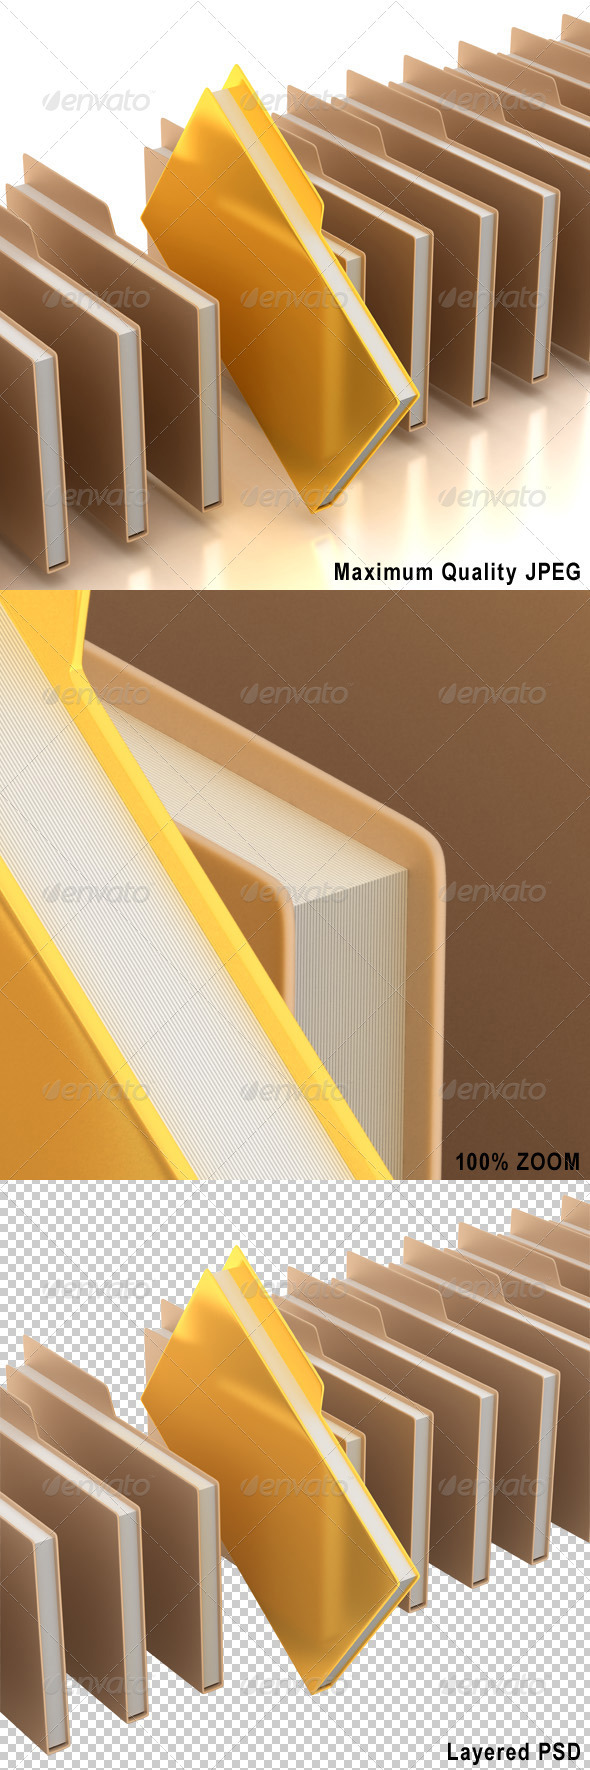 Document Folders with One Golden Folder - Business Backgrounds